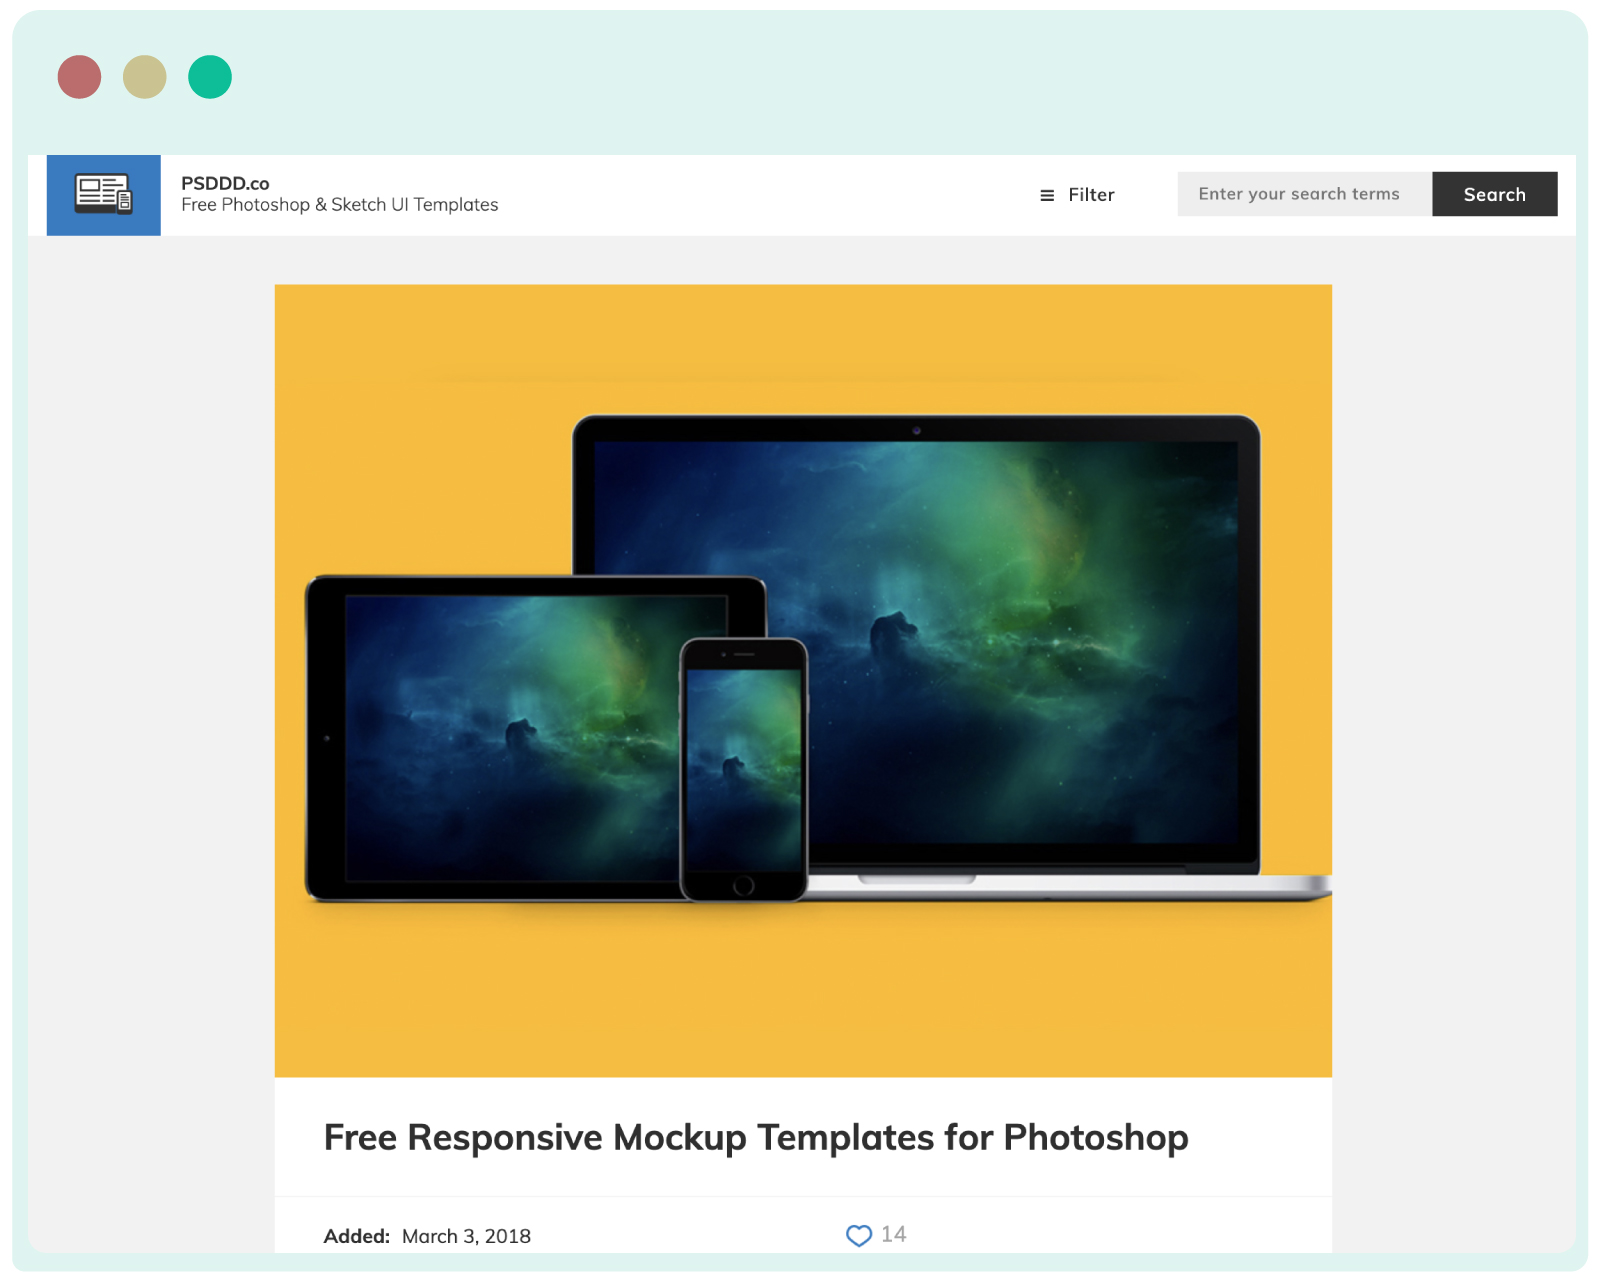 PSDDD- free Photoshop PSD and Sketch App resources for professional UI designers